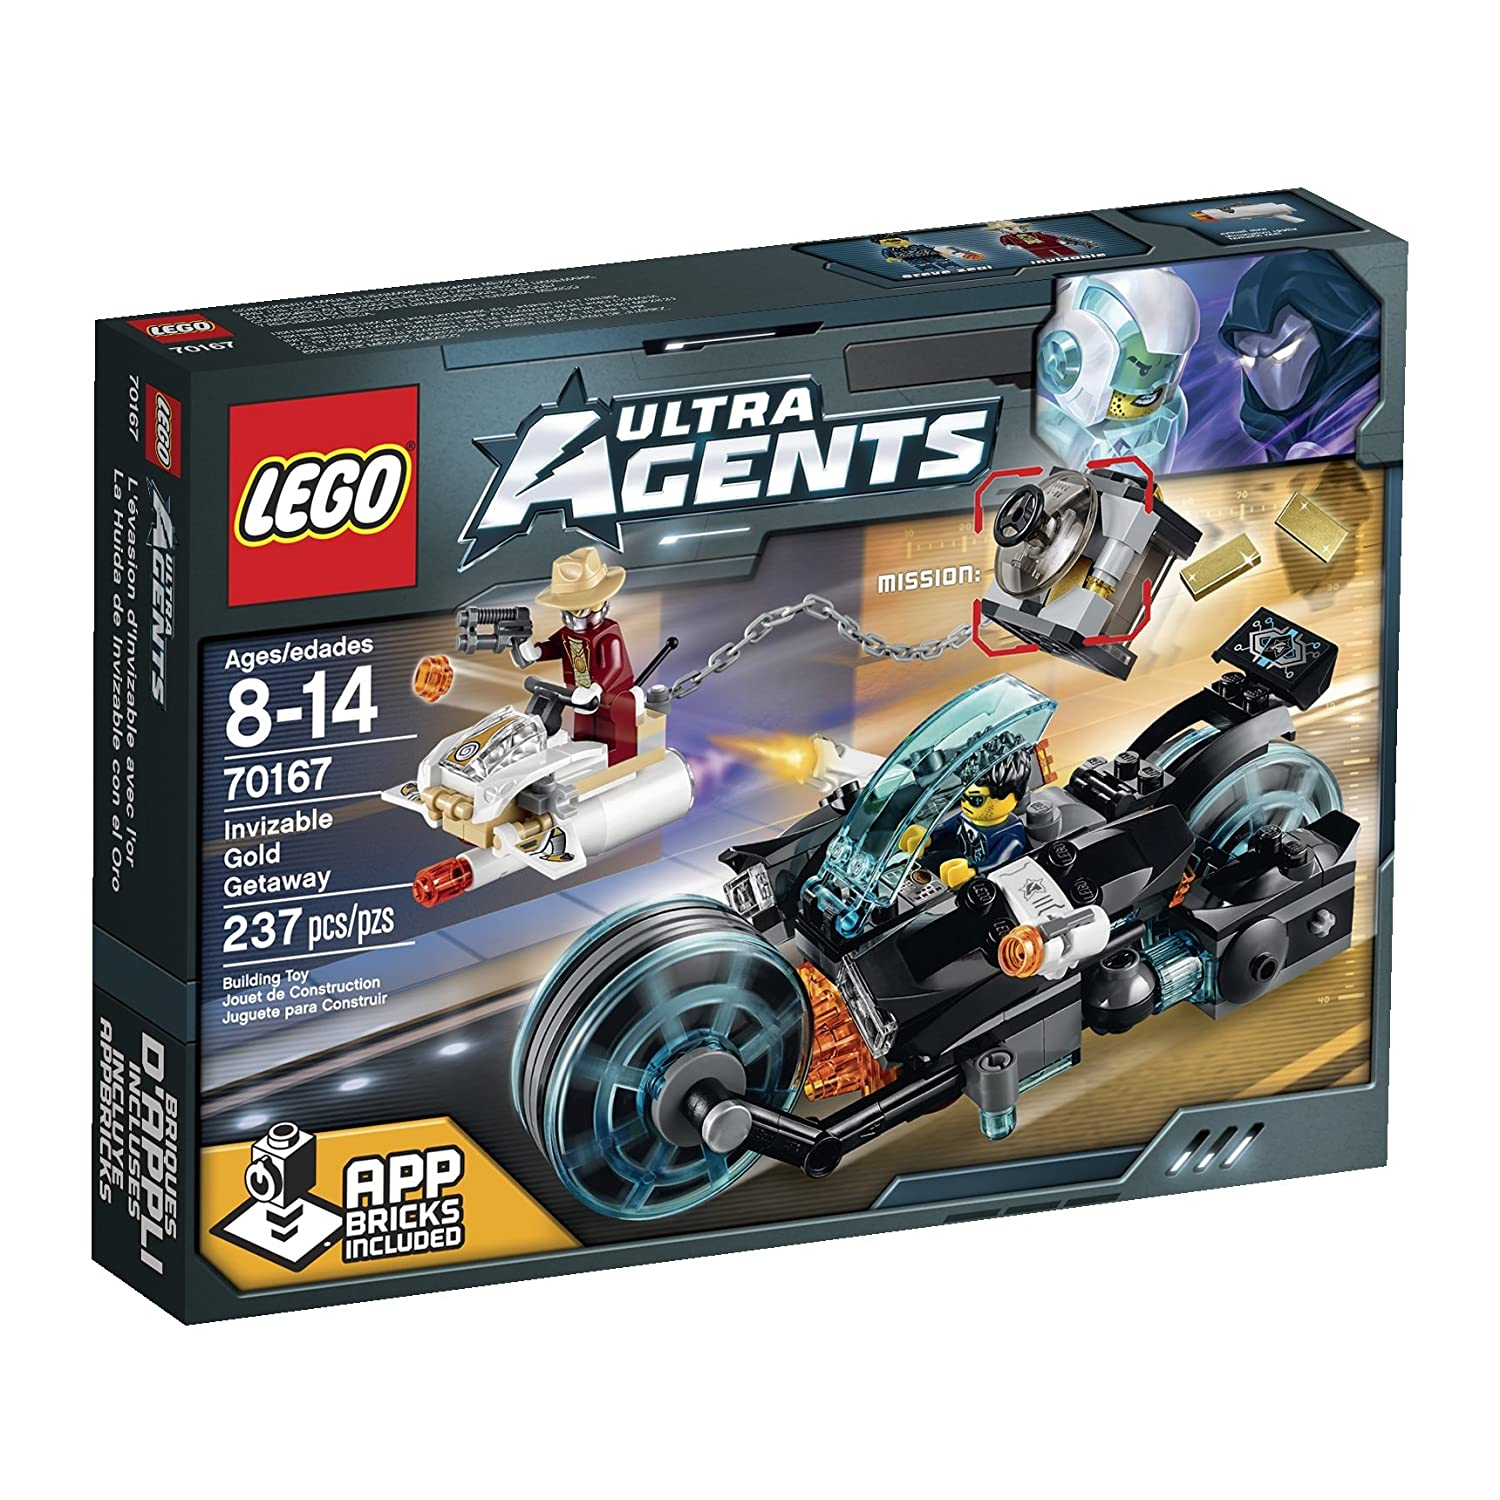 LEGO Ultra Agents Invizable Gold Getaway Toy by LEGO Ultra Agents